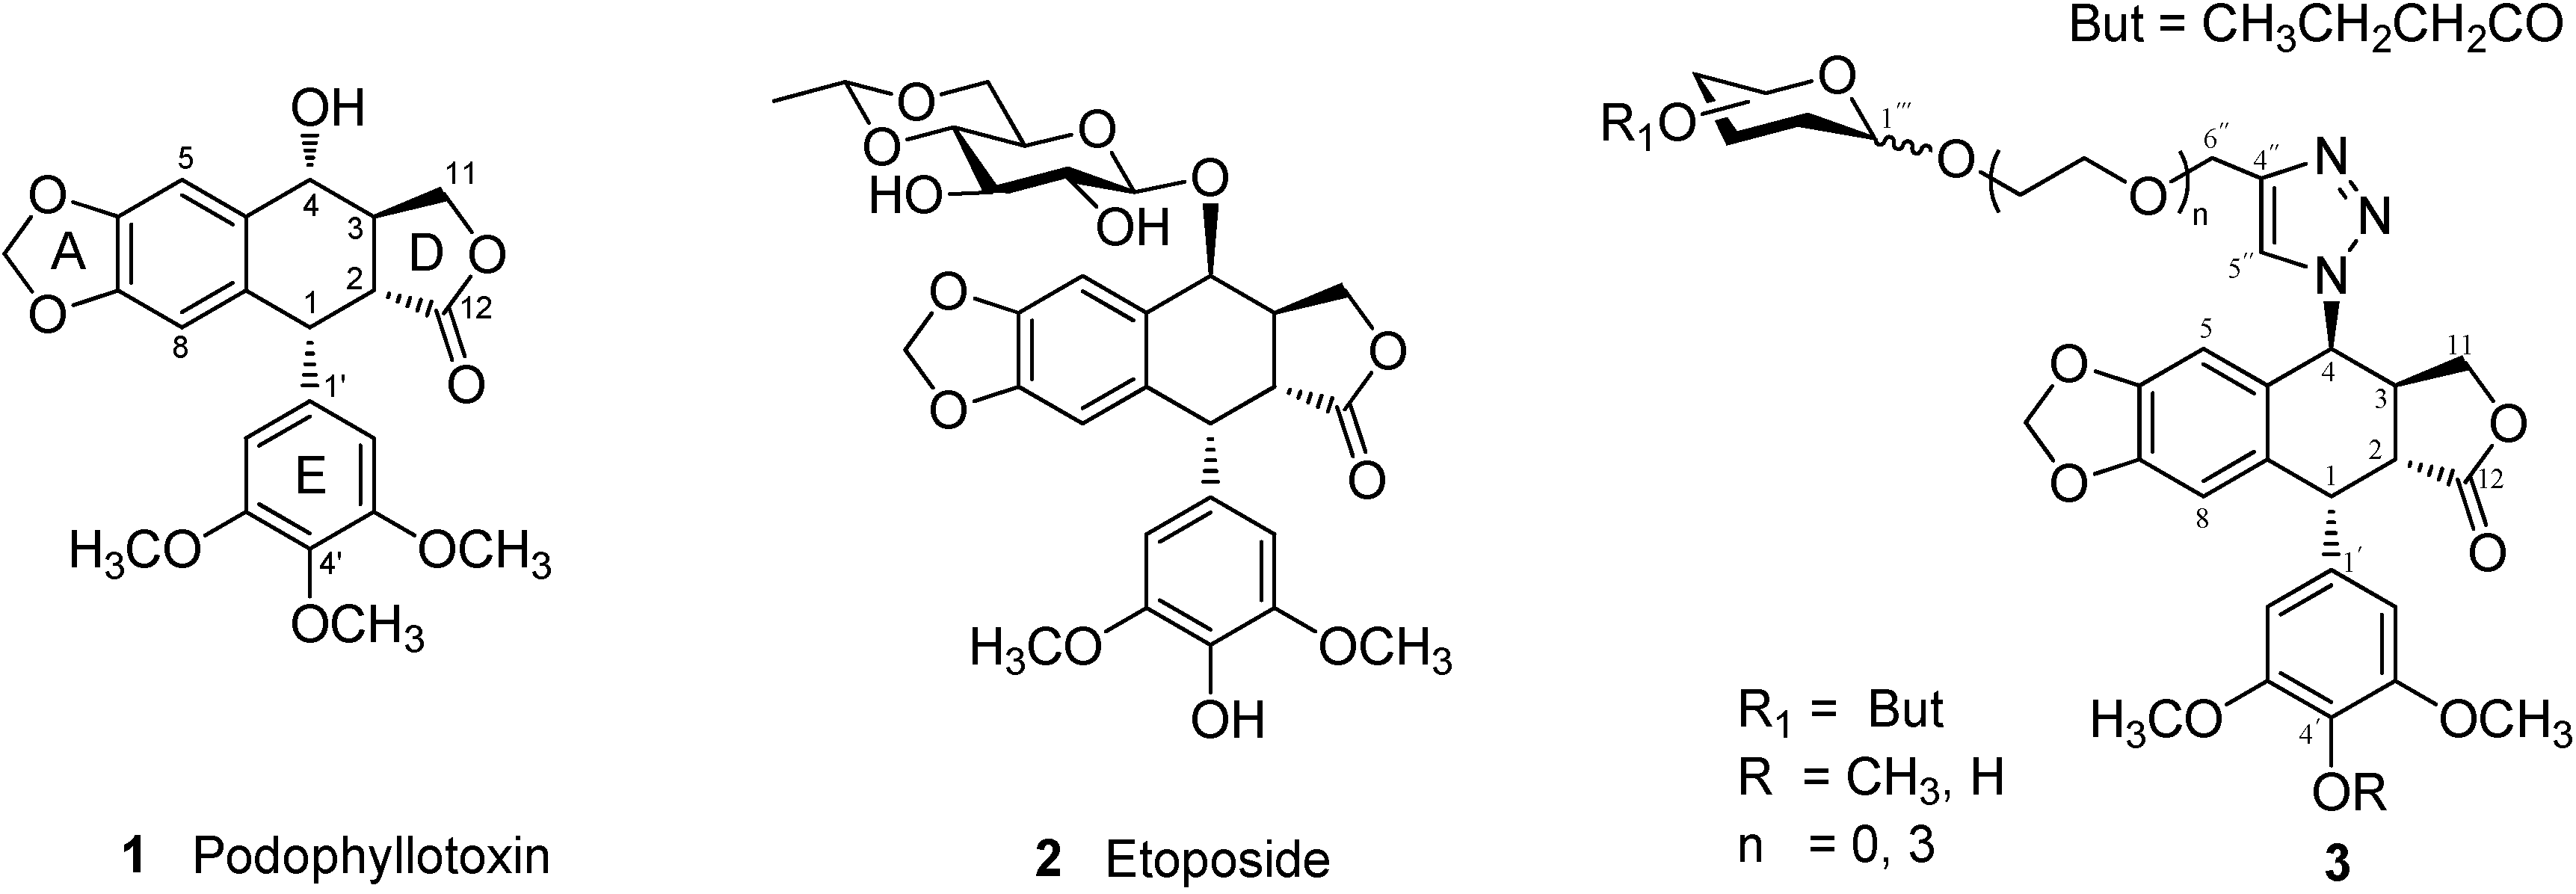 podophyllotoxin structure activity relationship of nsaids